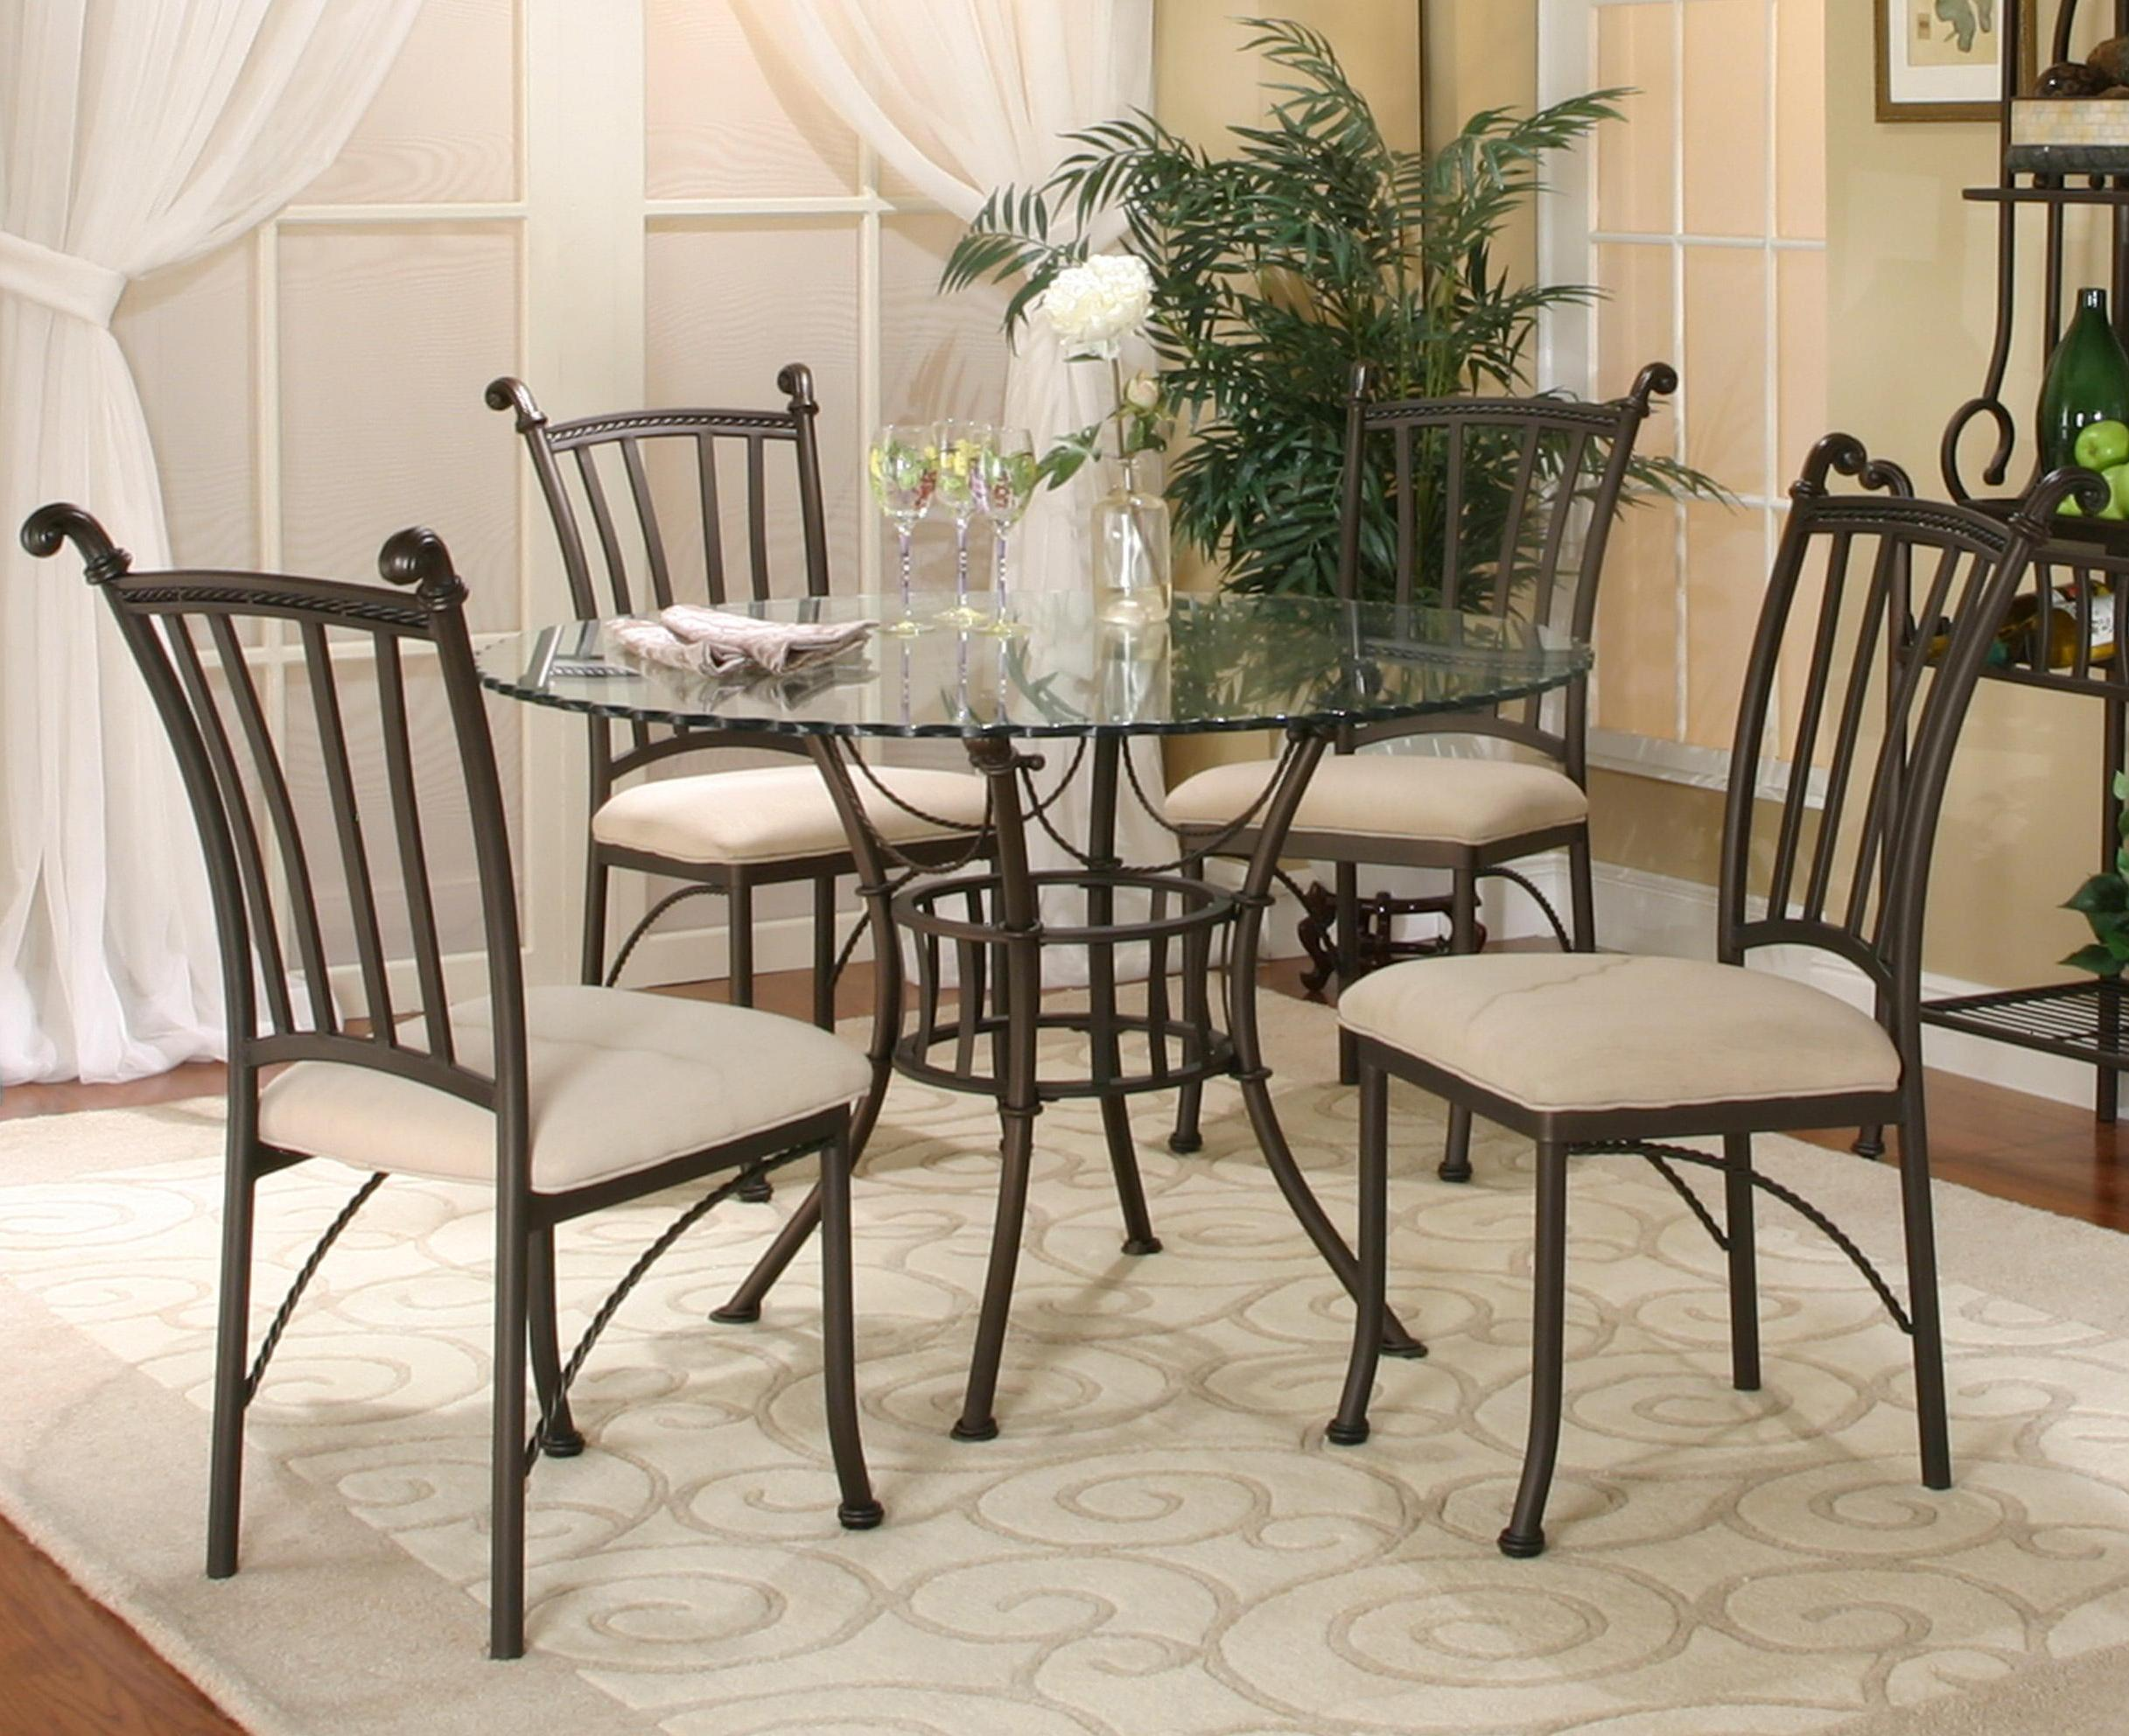 Dining Table Replacement Parts